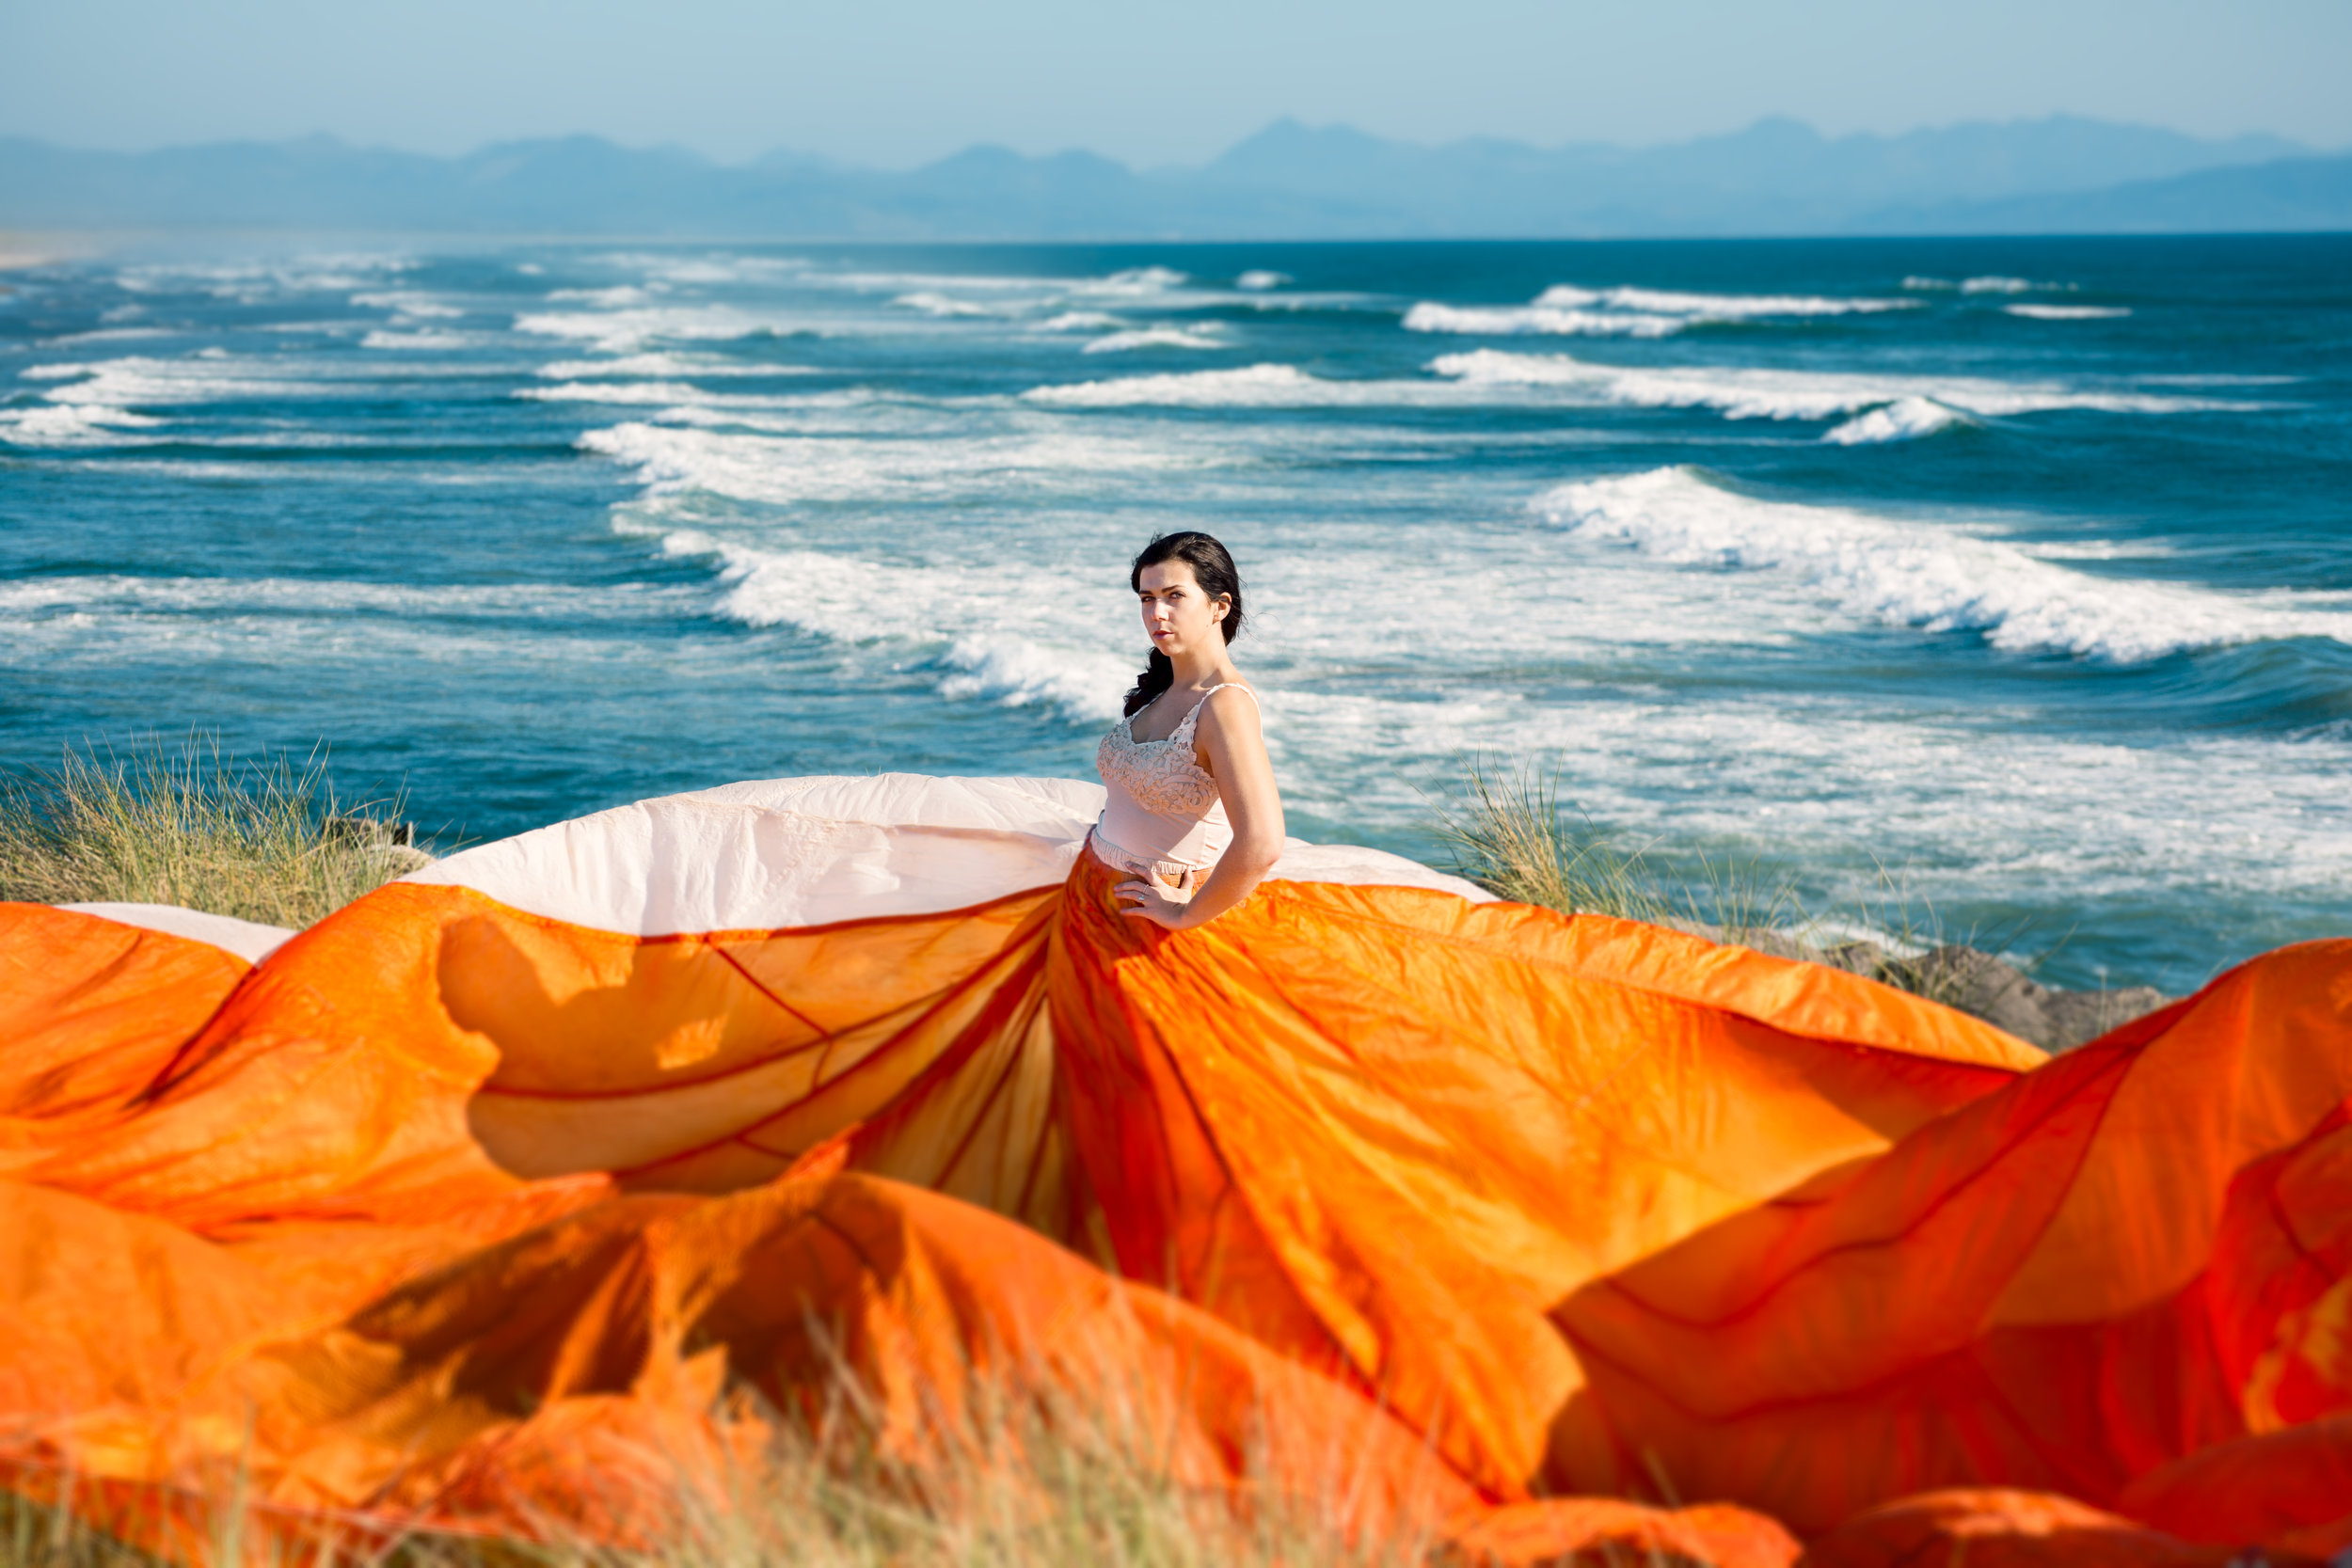 kathleen-barber-photography-flowy-dress-beach-seaside